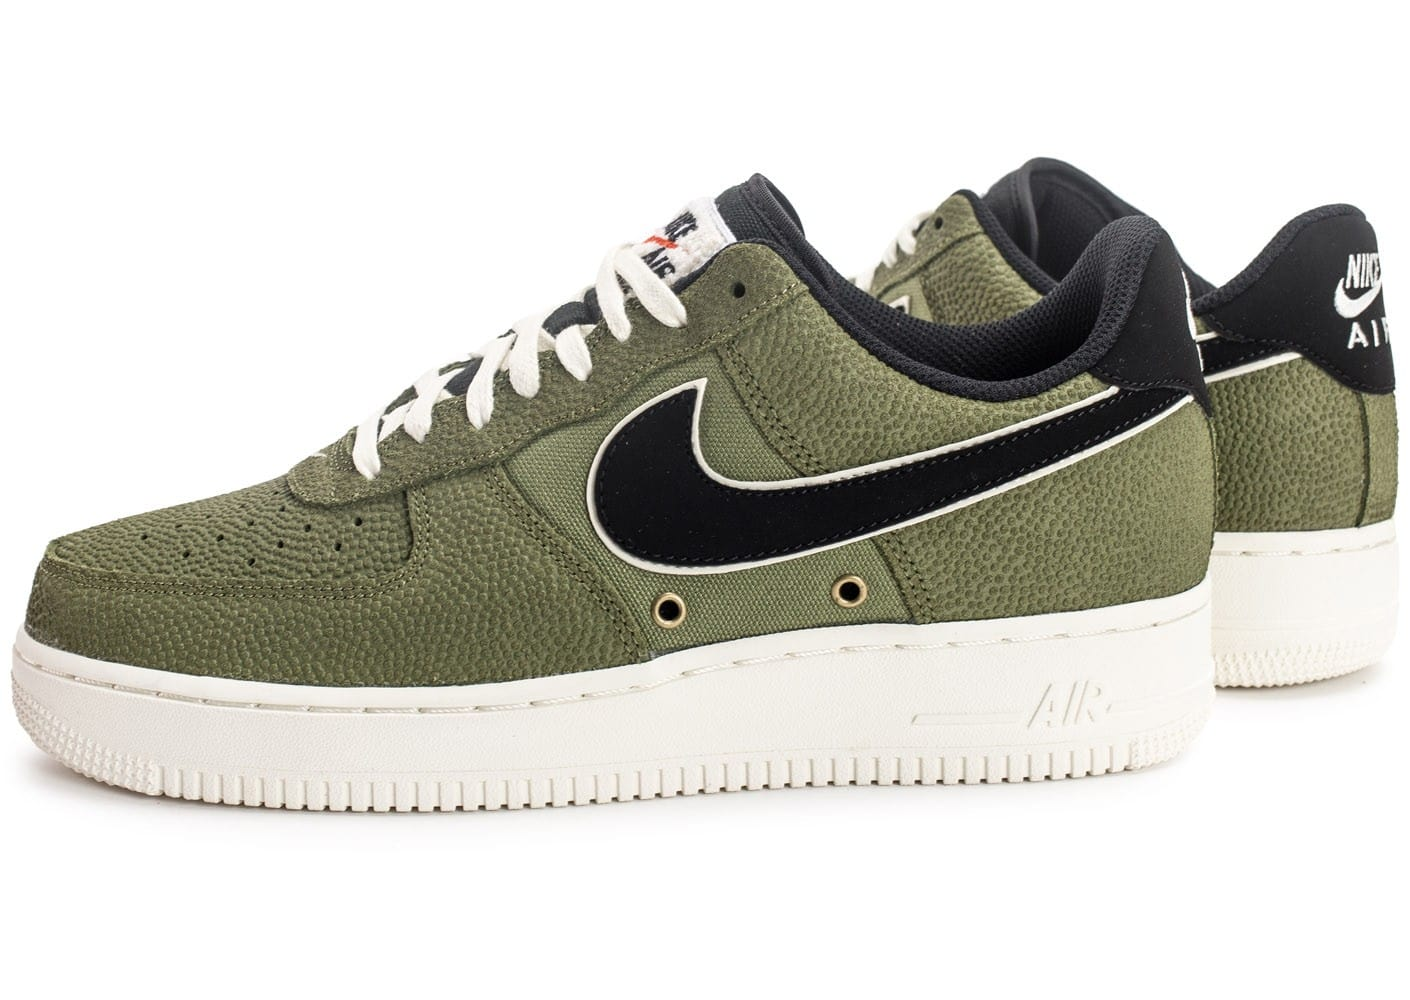 '07 Lv08 Force Chaussures Basketball Nike Verte 1 Air Leather axpTwwqtI